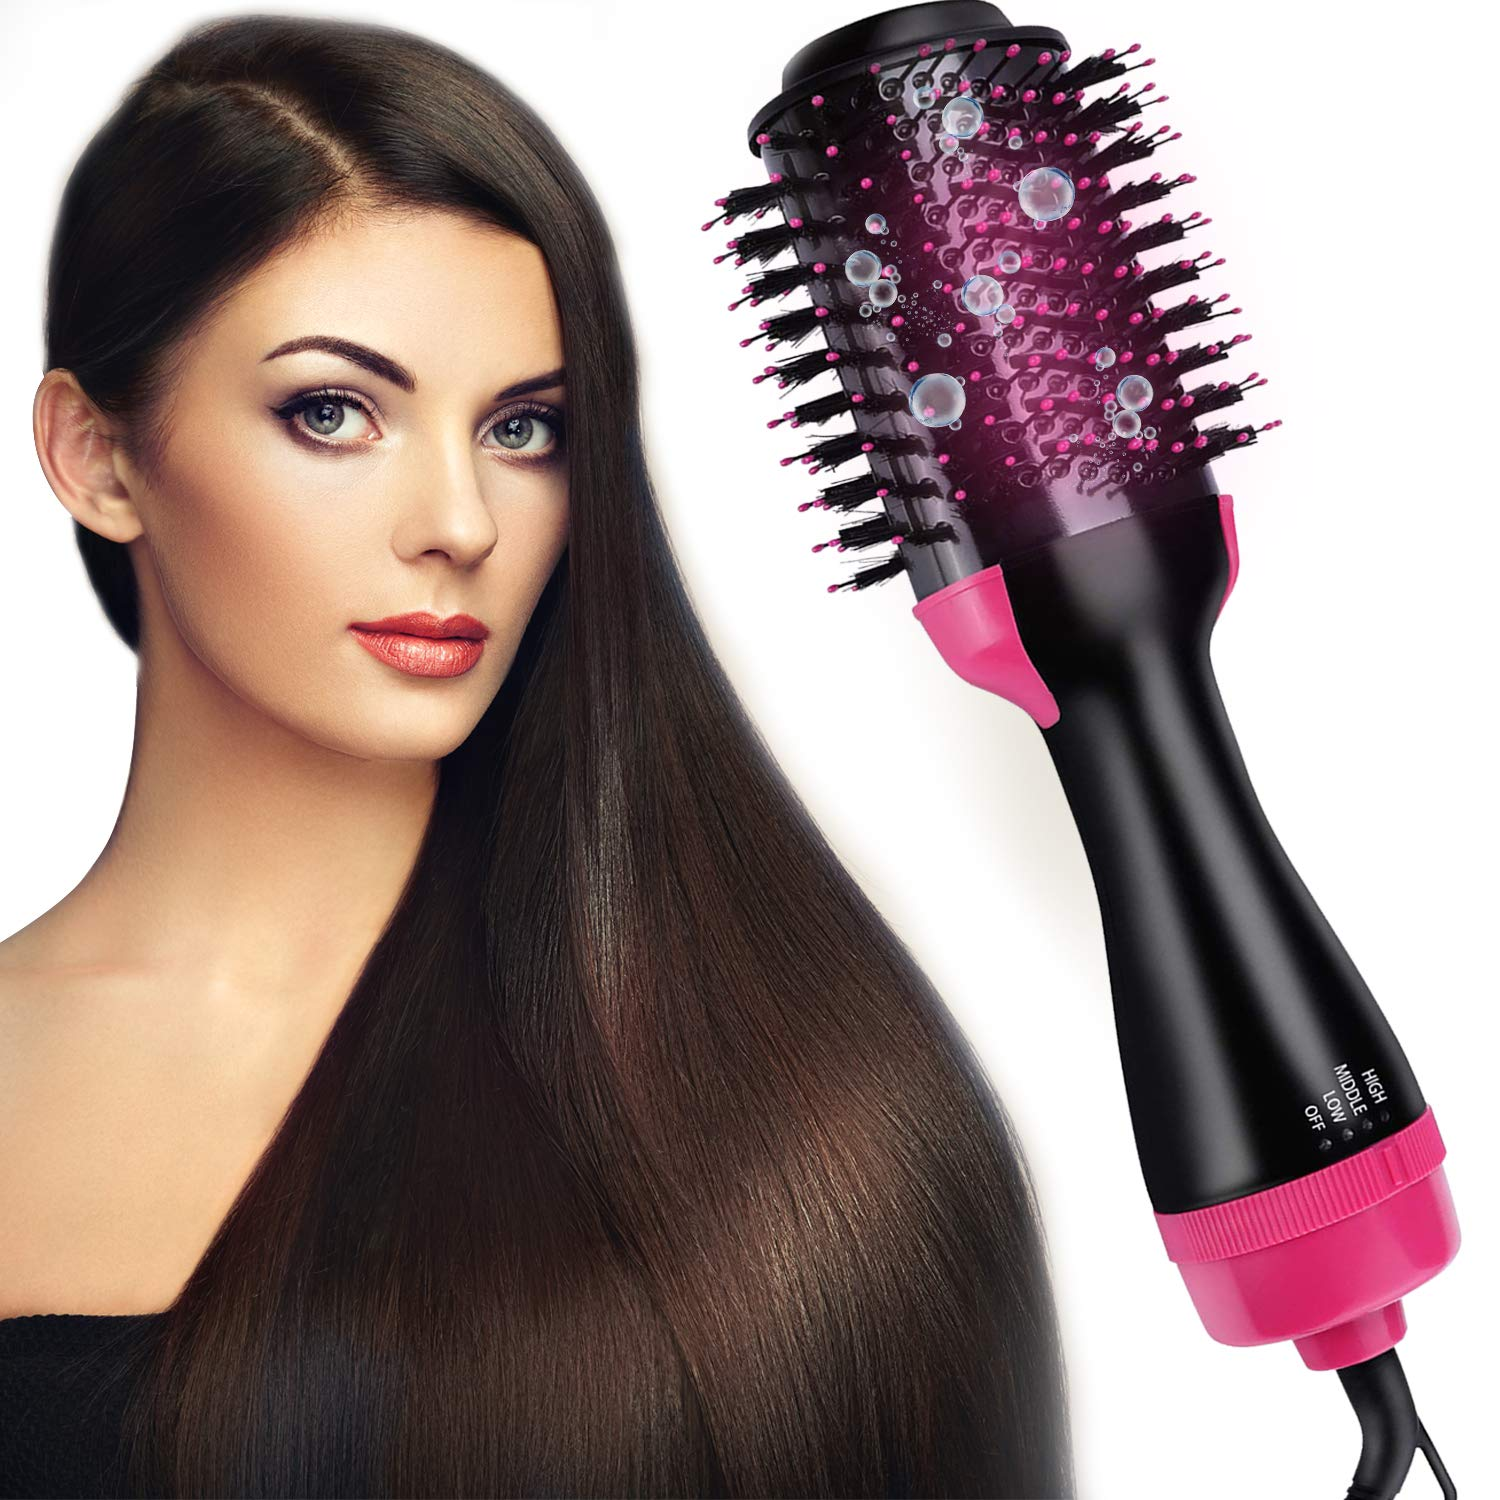 Hot Air Brush One-Step Hair Dryer Brush Volumizer,Dry Straighten Curl Comb 4 In 1 Salon Negative Ionic Hair Reduce Frizz And Static,Hair Styling Tools For Women And Girl All Types Hair